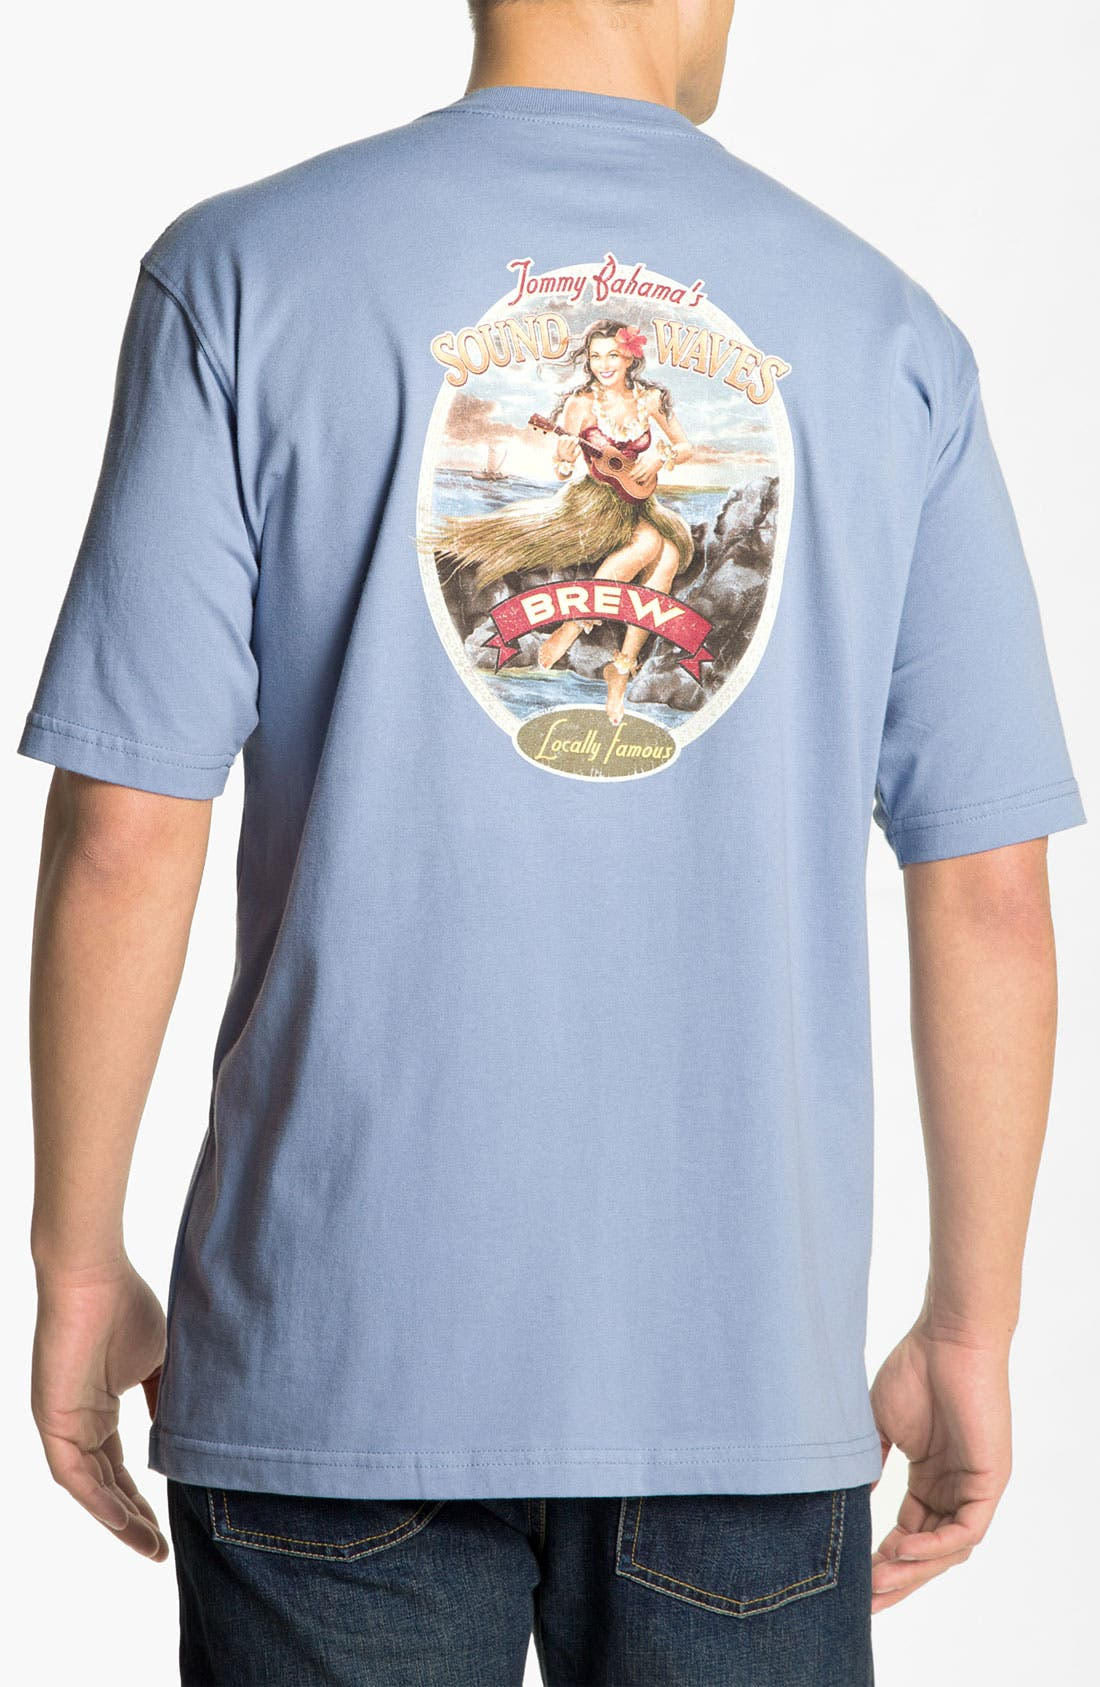 Main Image - Tommy Bahama 'Sound Waves Brew' T-Shirt